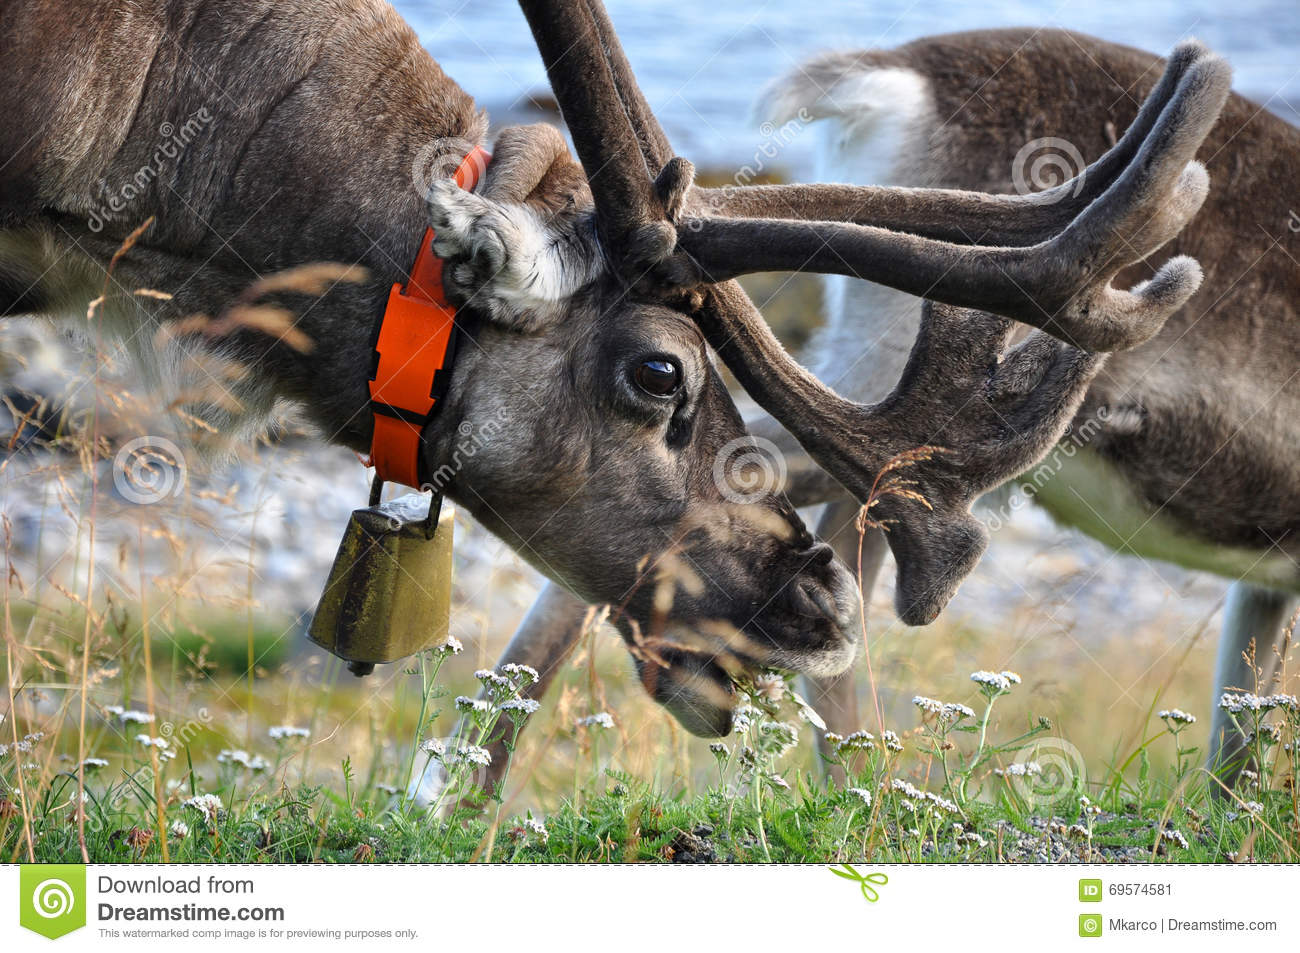 Reindeer with bell eating grass